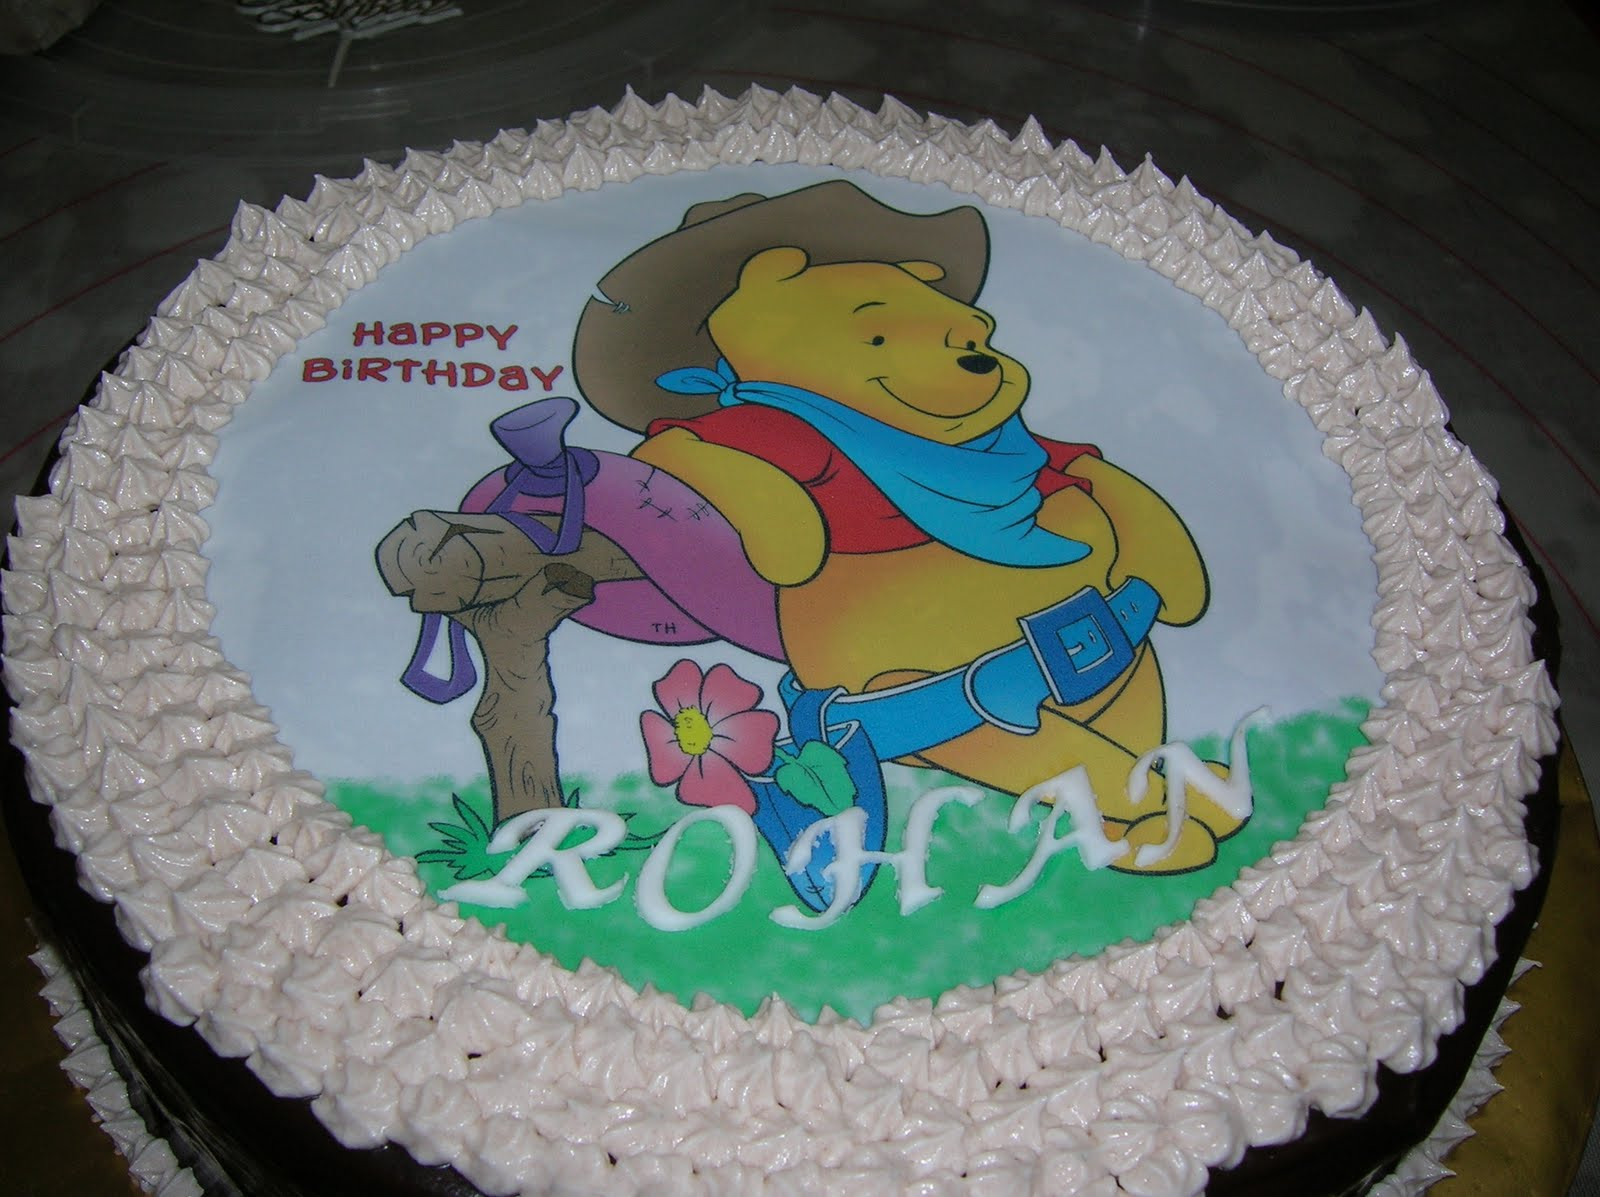 Cake Images With Name Rohan : Happy Birthday Rohan Cake Ideas and Designs